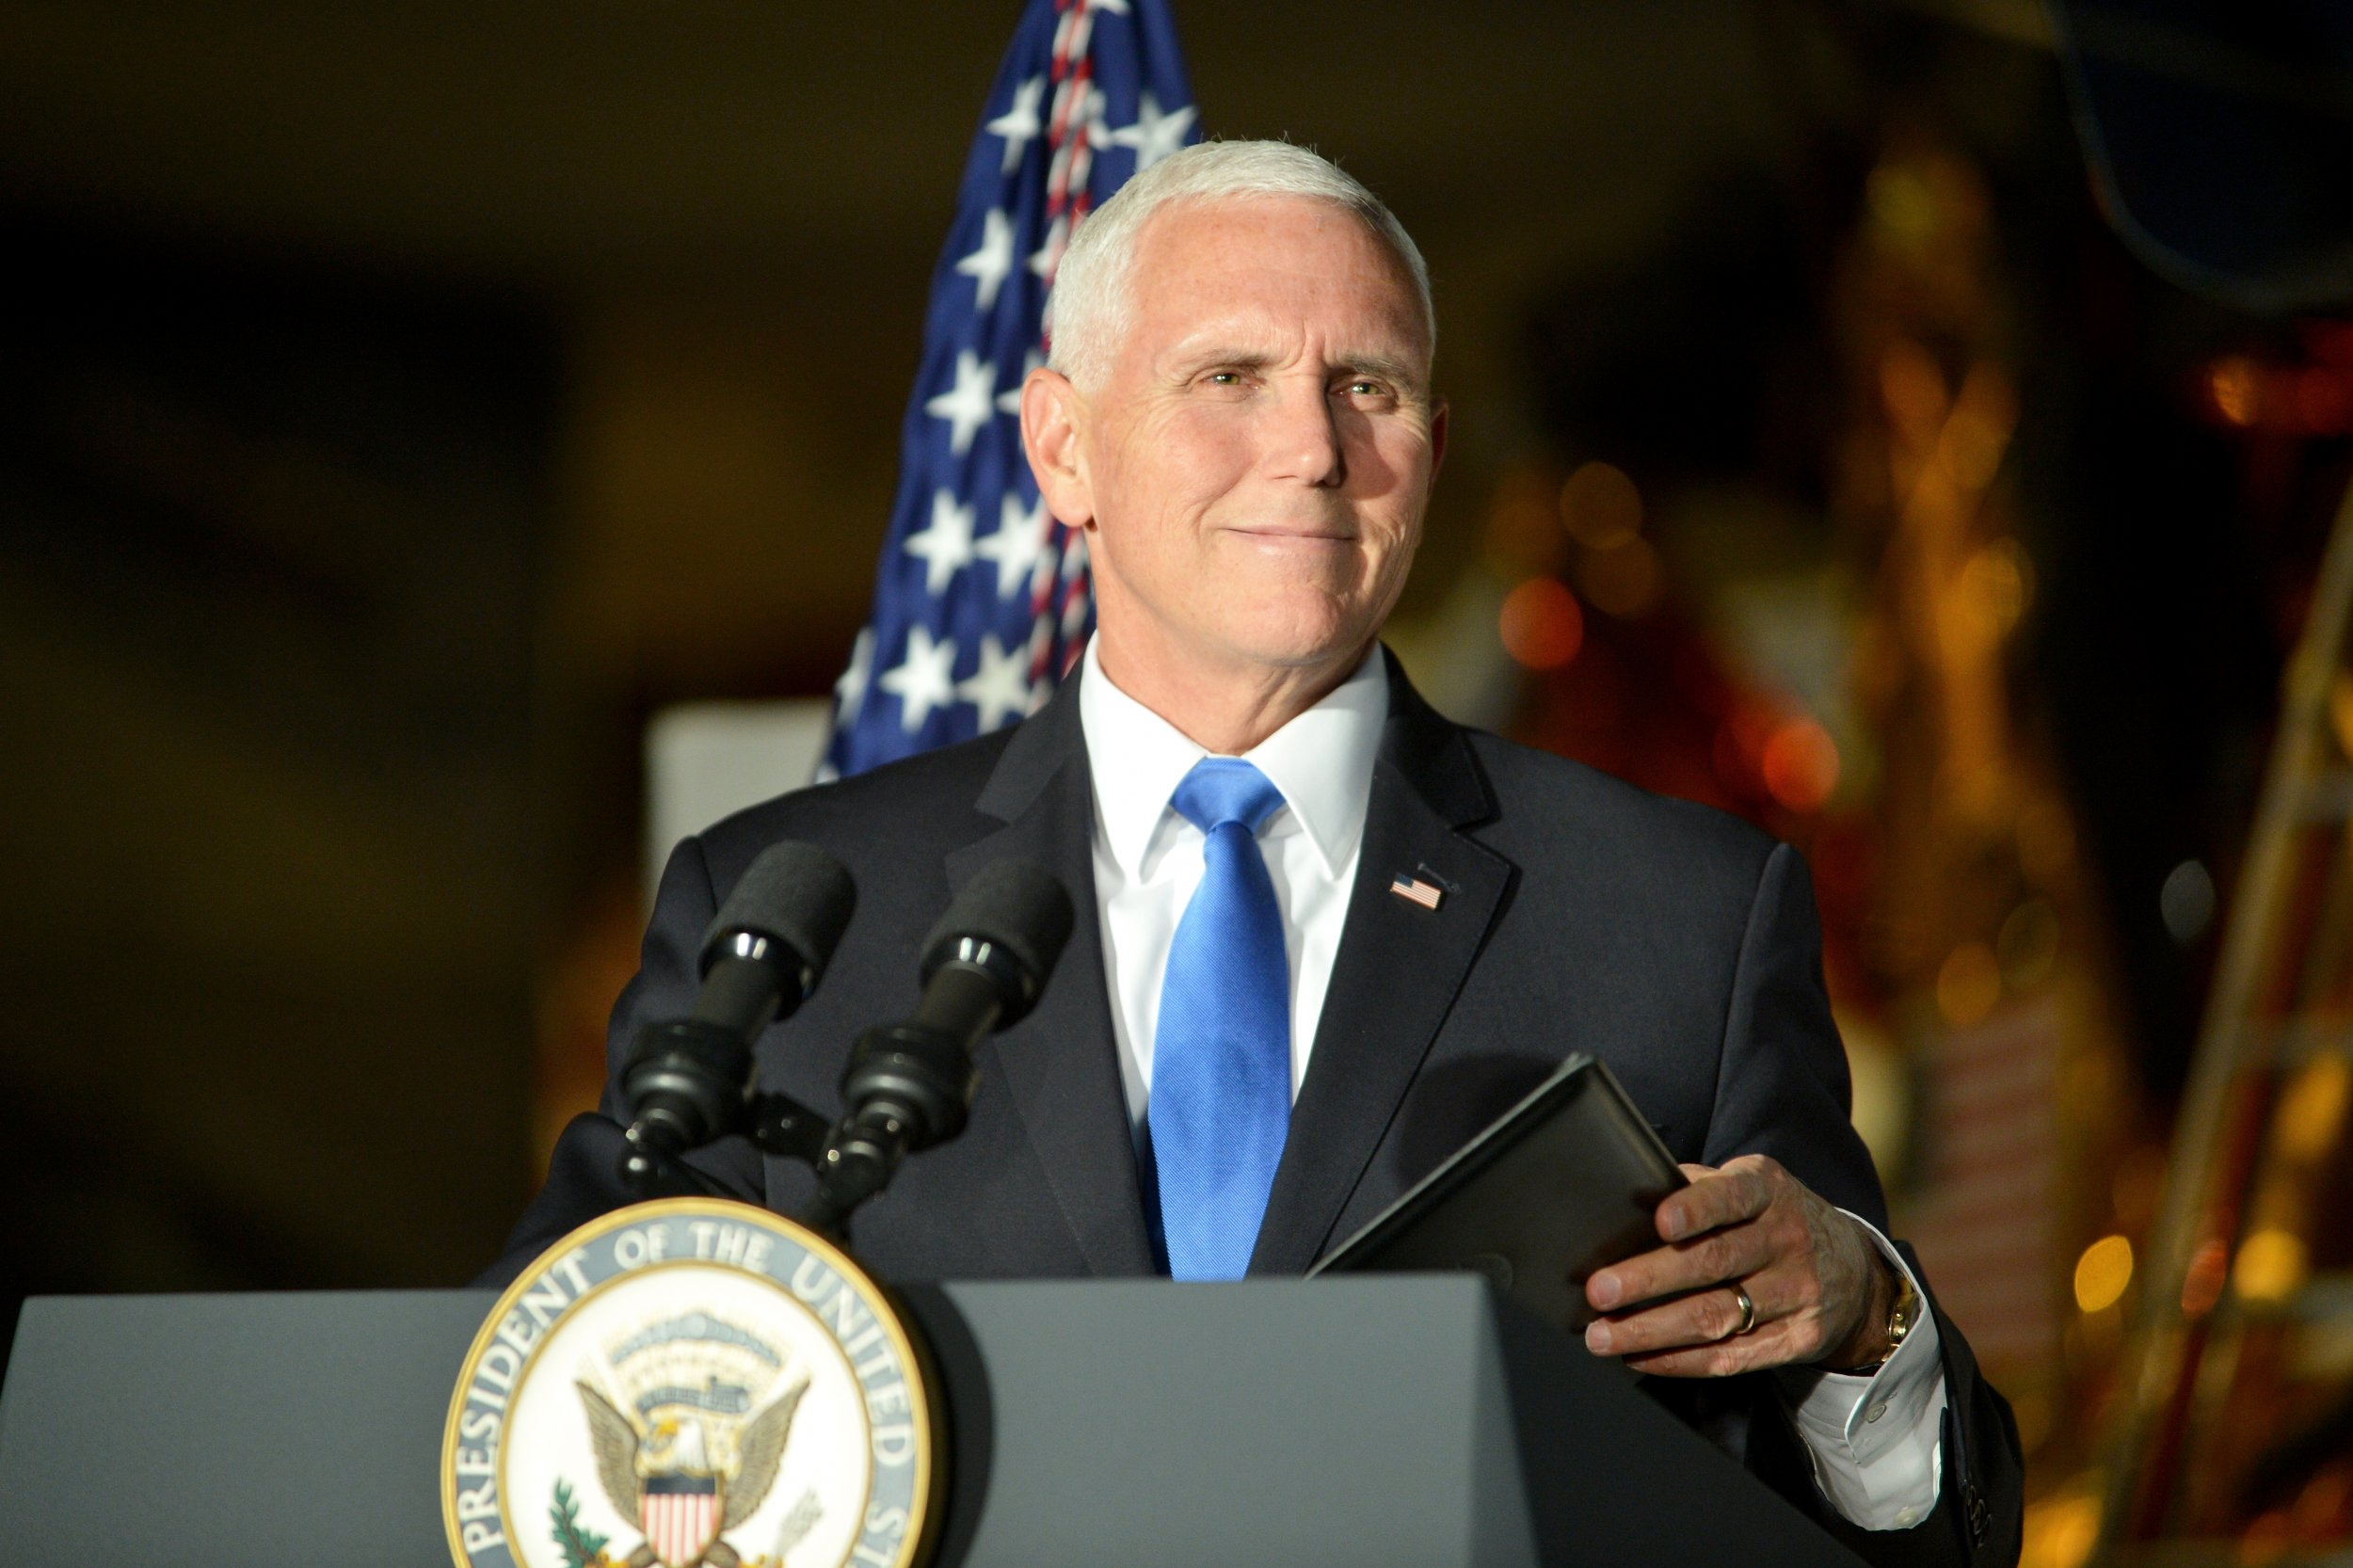 mike pence graduation west point watch live stream